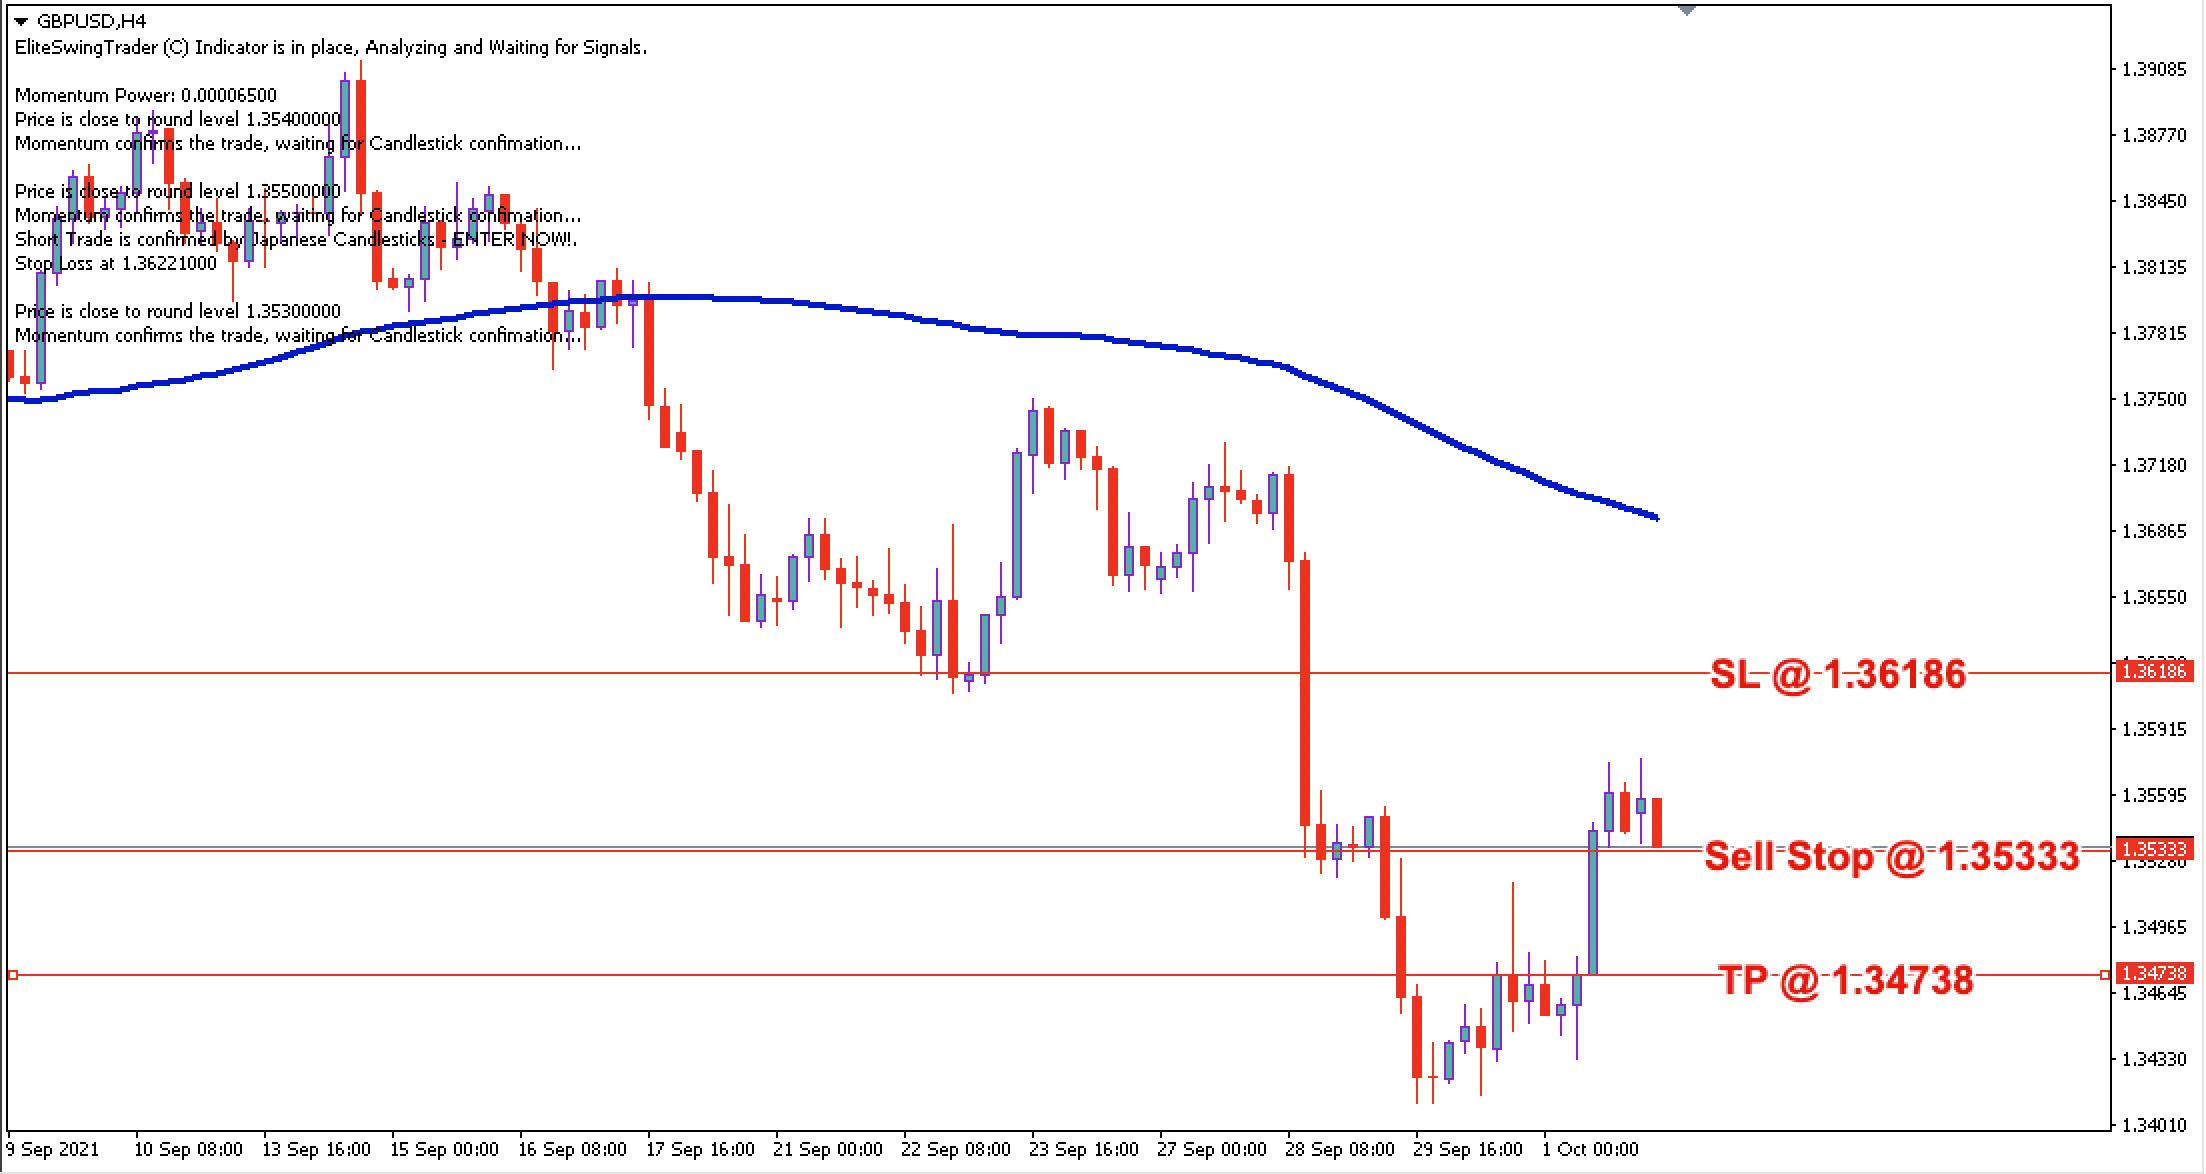 GBP/USD Daily Price Forecast – 4th Oct 2021